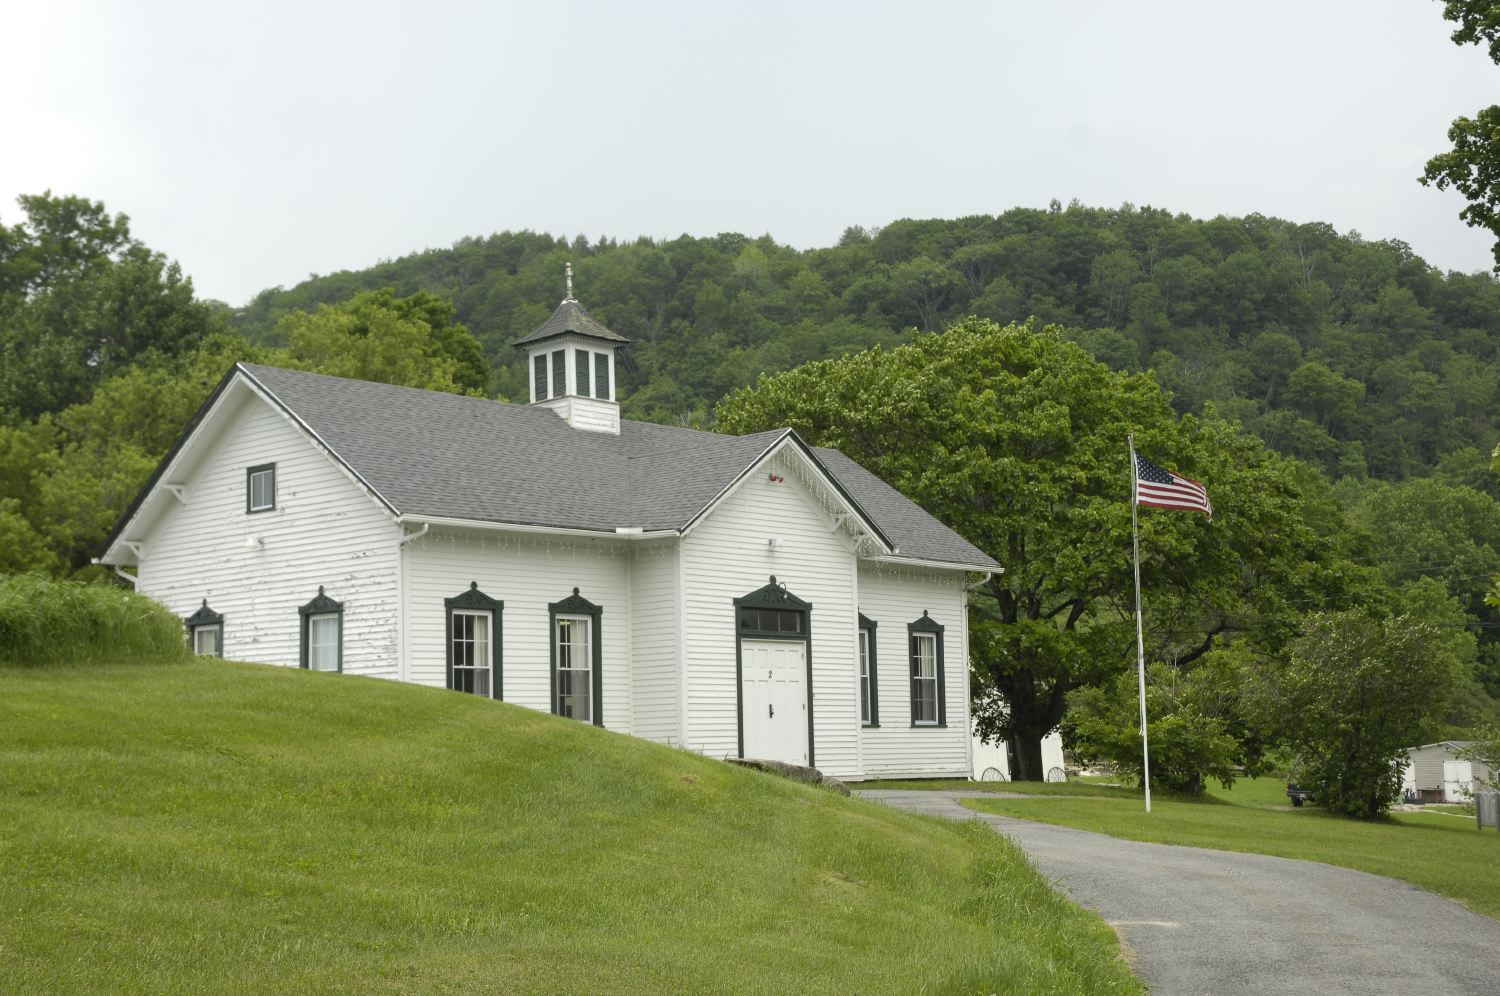 Tyringham Church and Cemetery